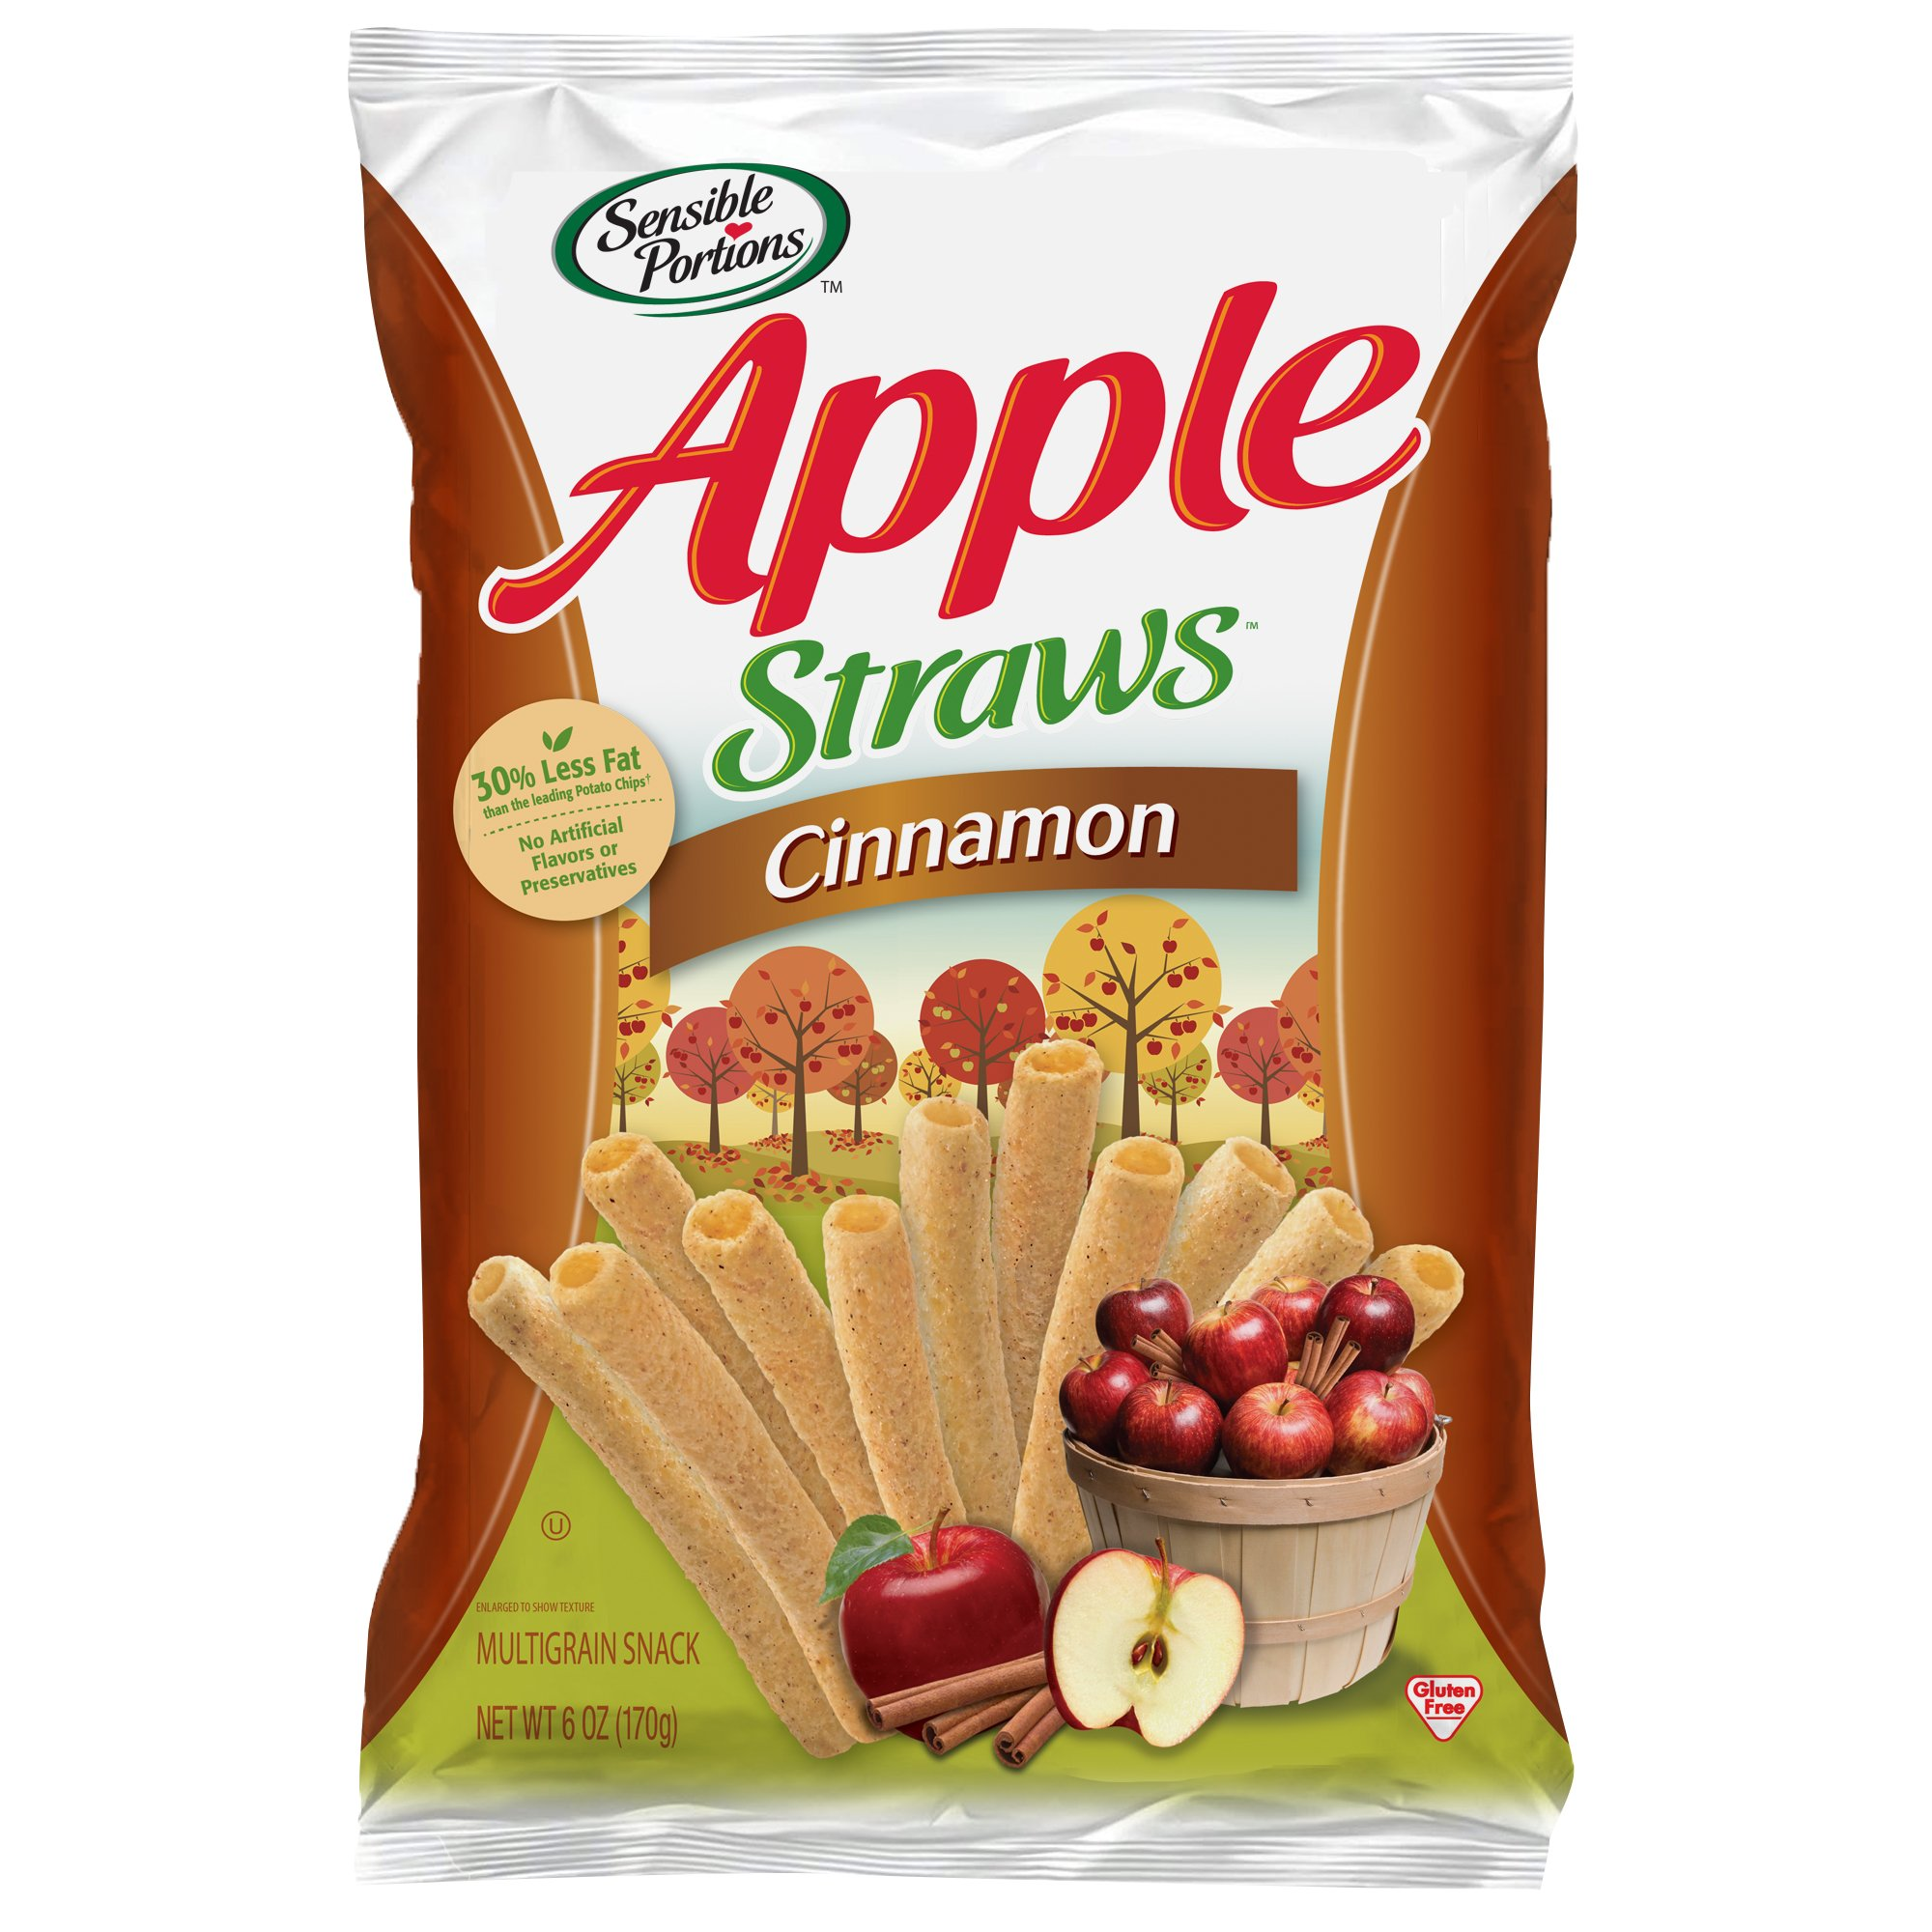 Sensible Portions Apple Straws, Cinnamon, 6 oz. (Pack of 12) by Sensible Portions